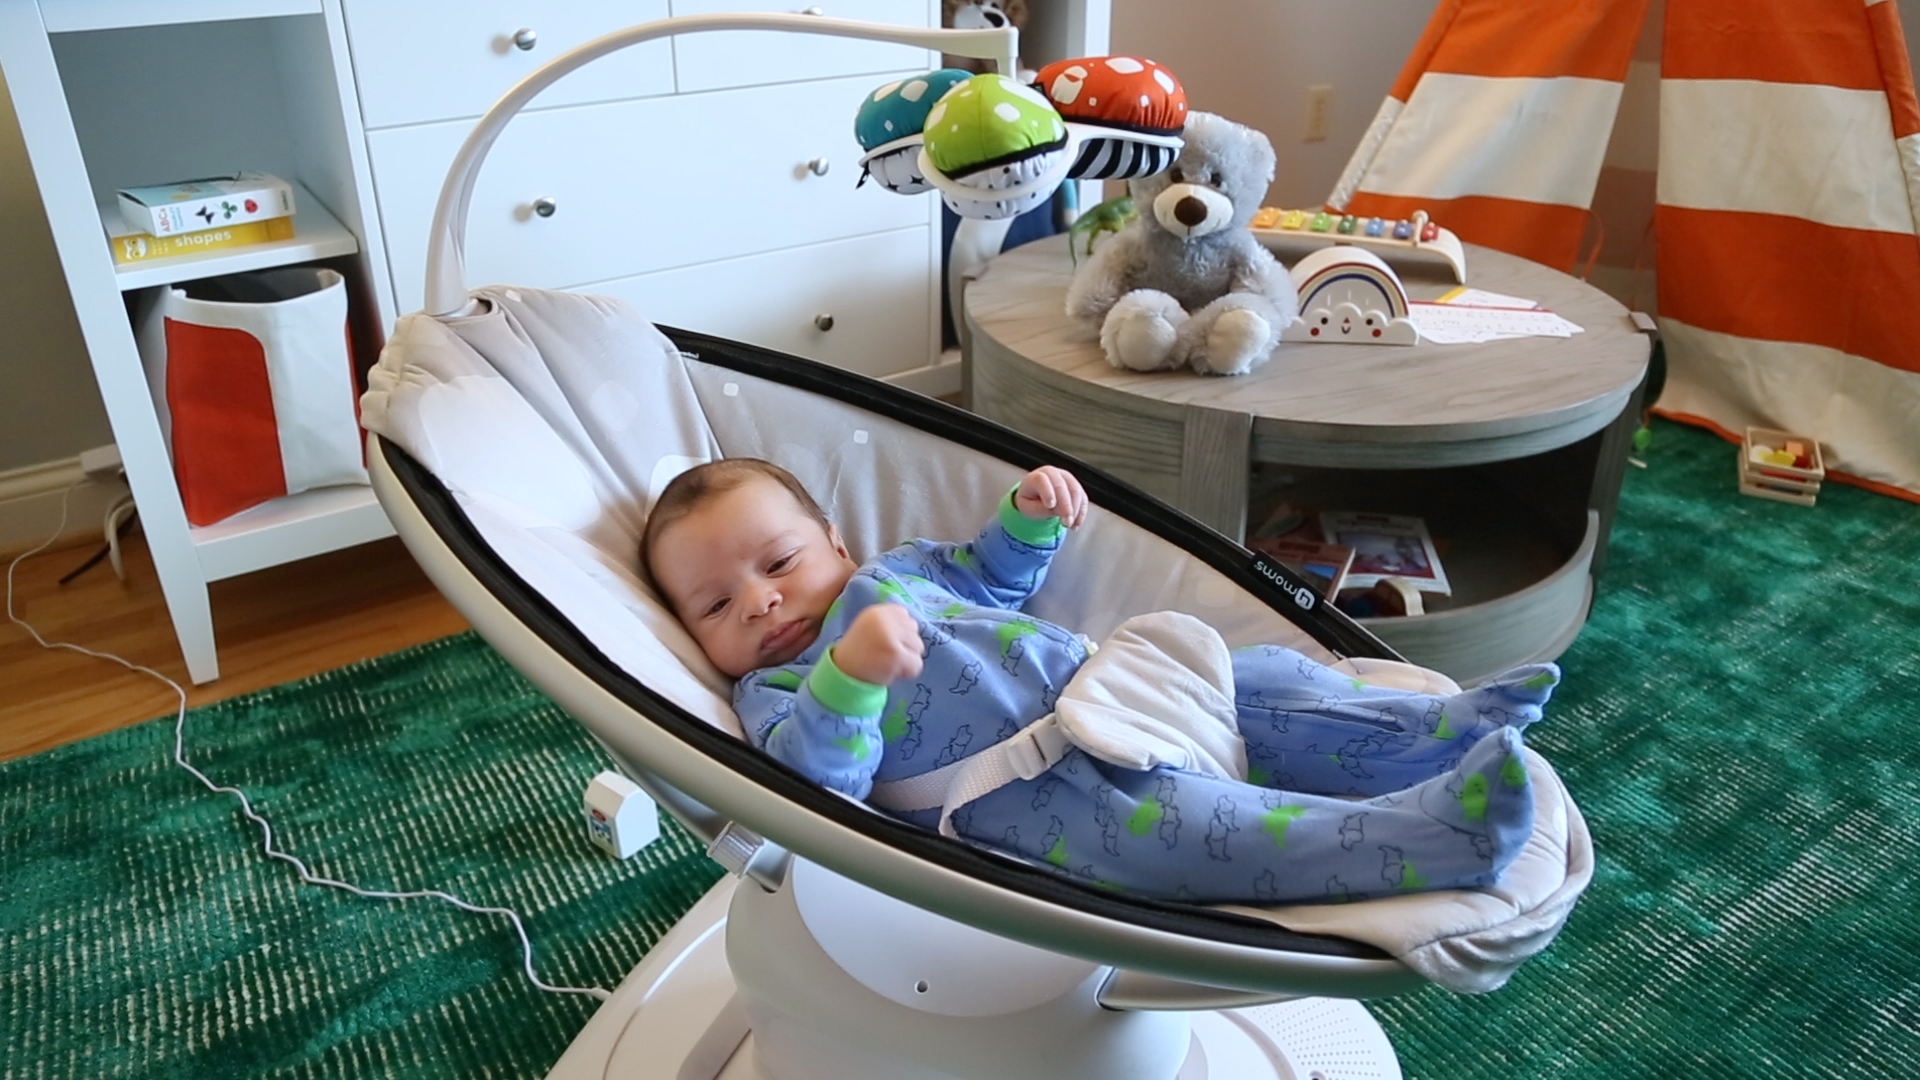 Video: Watch a baby test out this smart infant seat